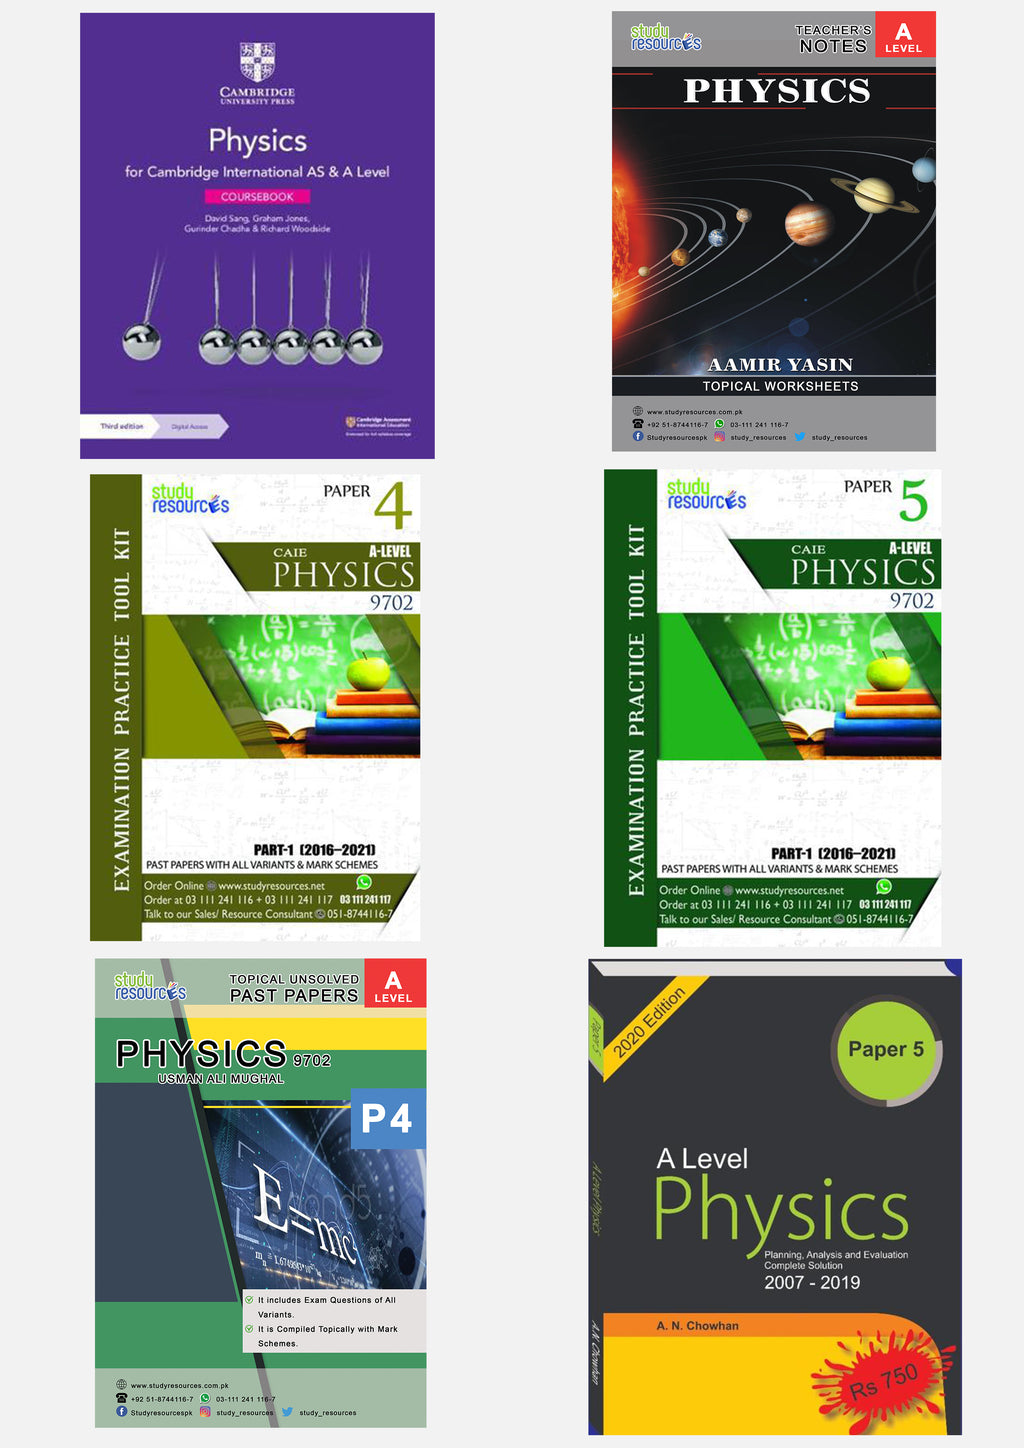 Cambridge A-Level Physics (9702) Exam Success Resource Bundle (CUSTOMIZABLE)